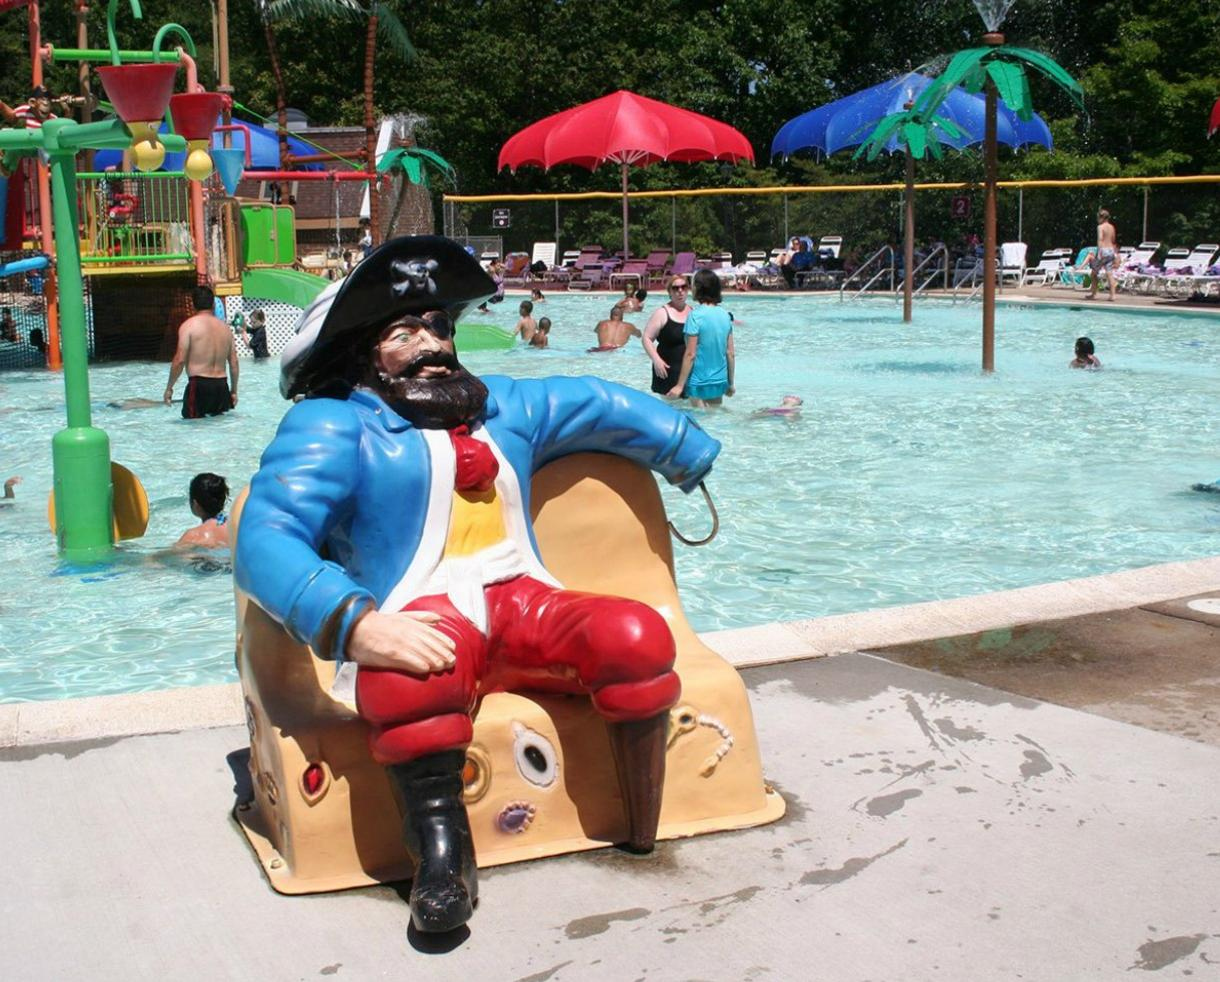 Pirate's Cove Waterpark Admission